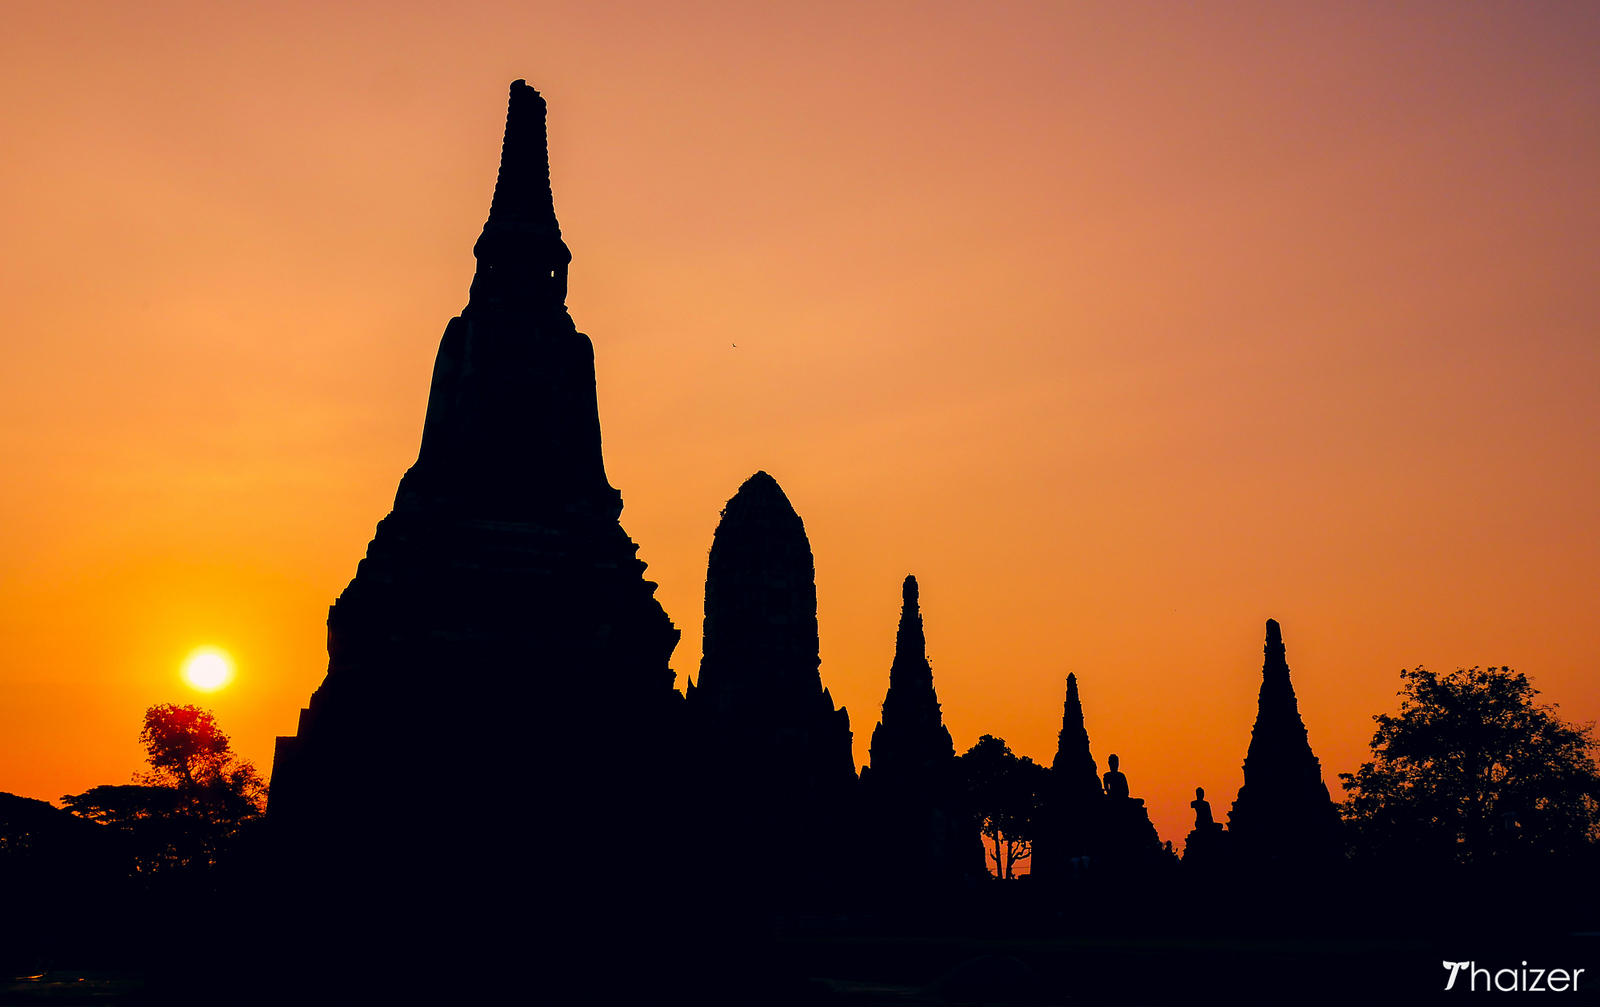 sunset at Wat Chaiwatthanaram, Ayutthaya